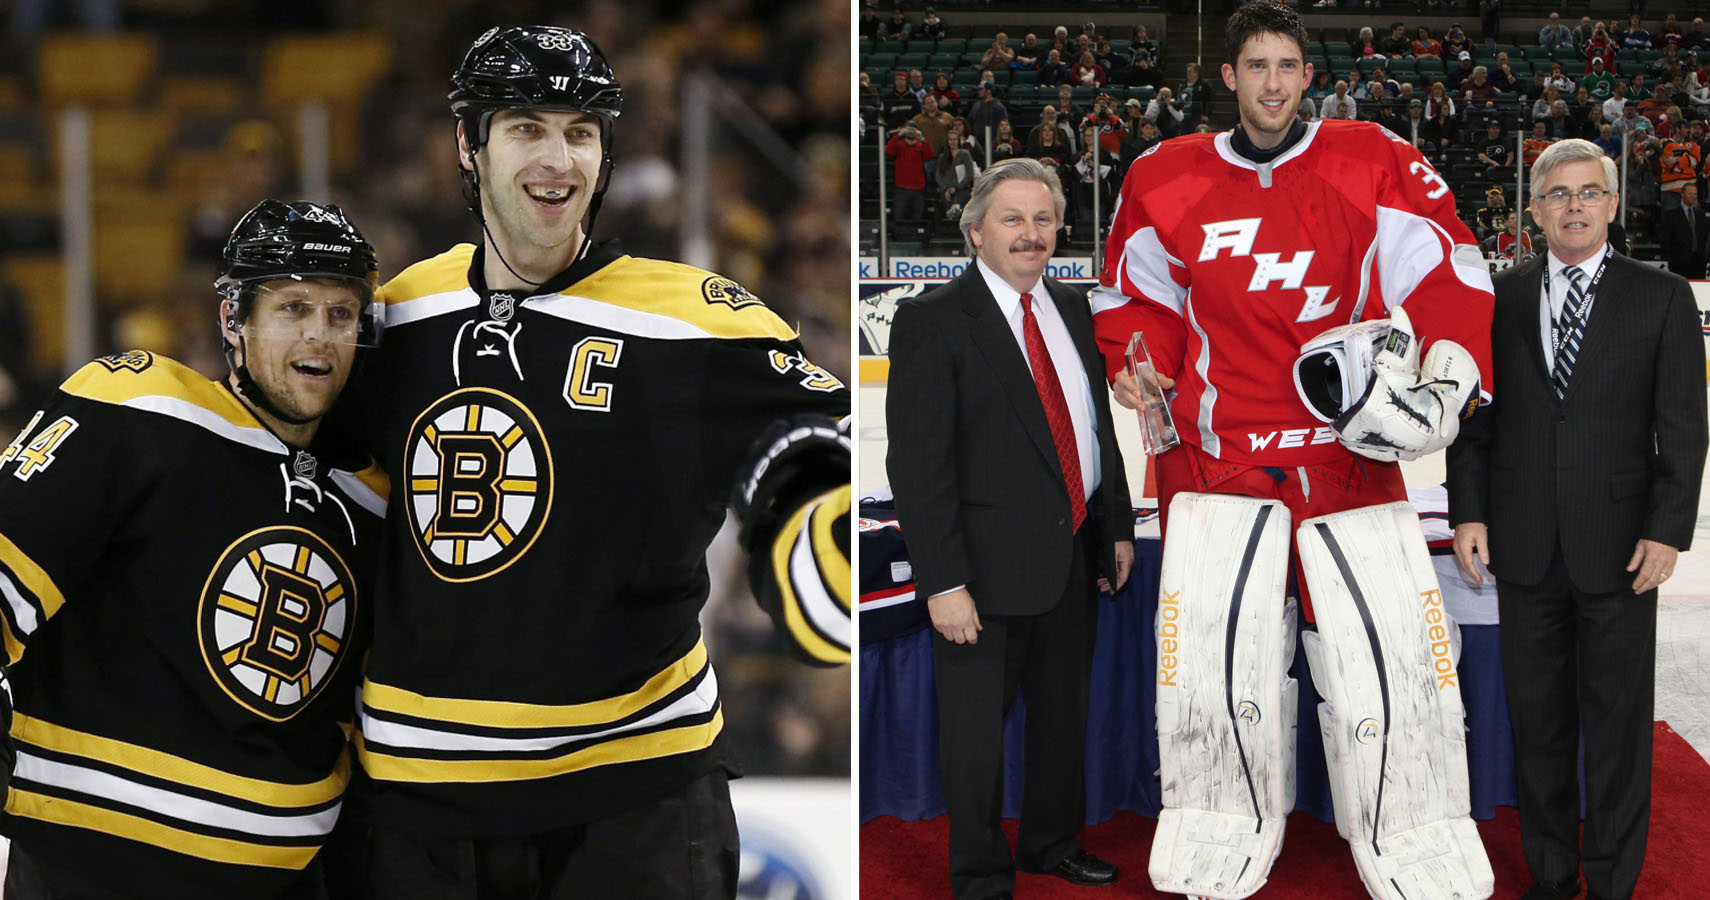 Top 15 Tallest Nhl Players Today